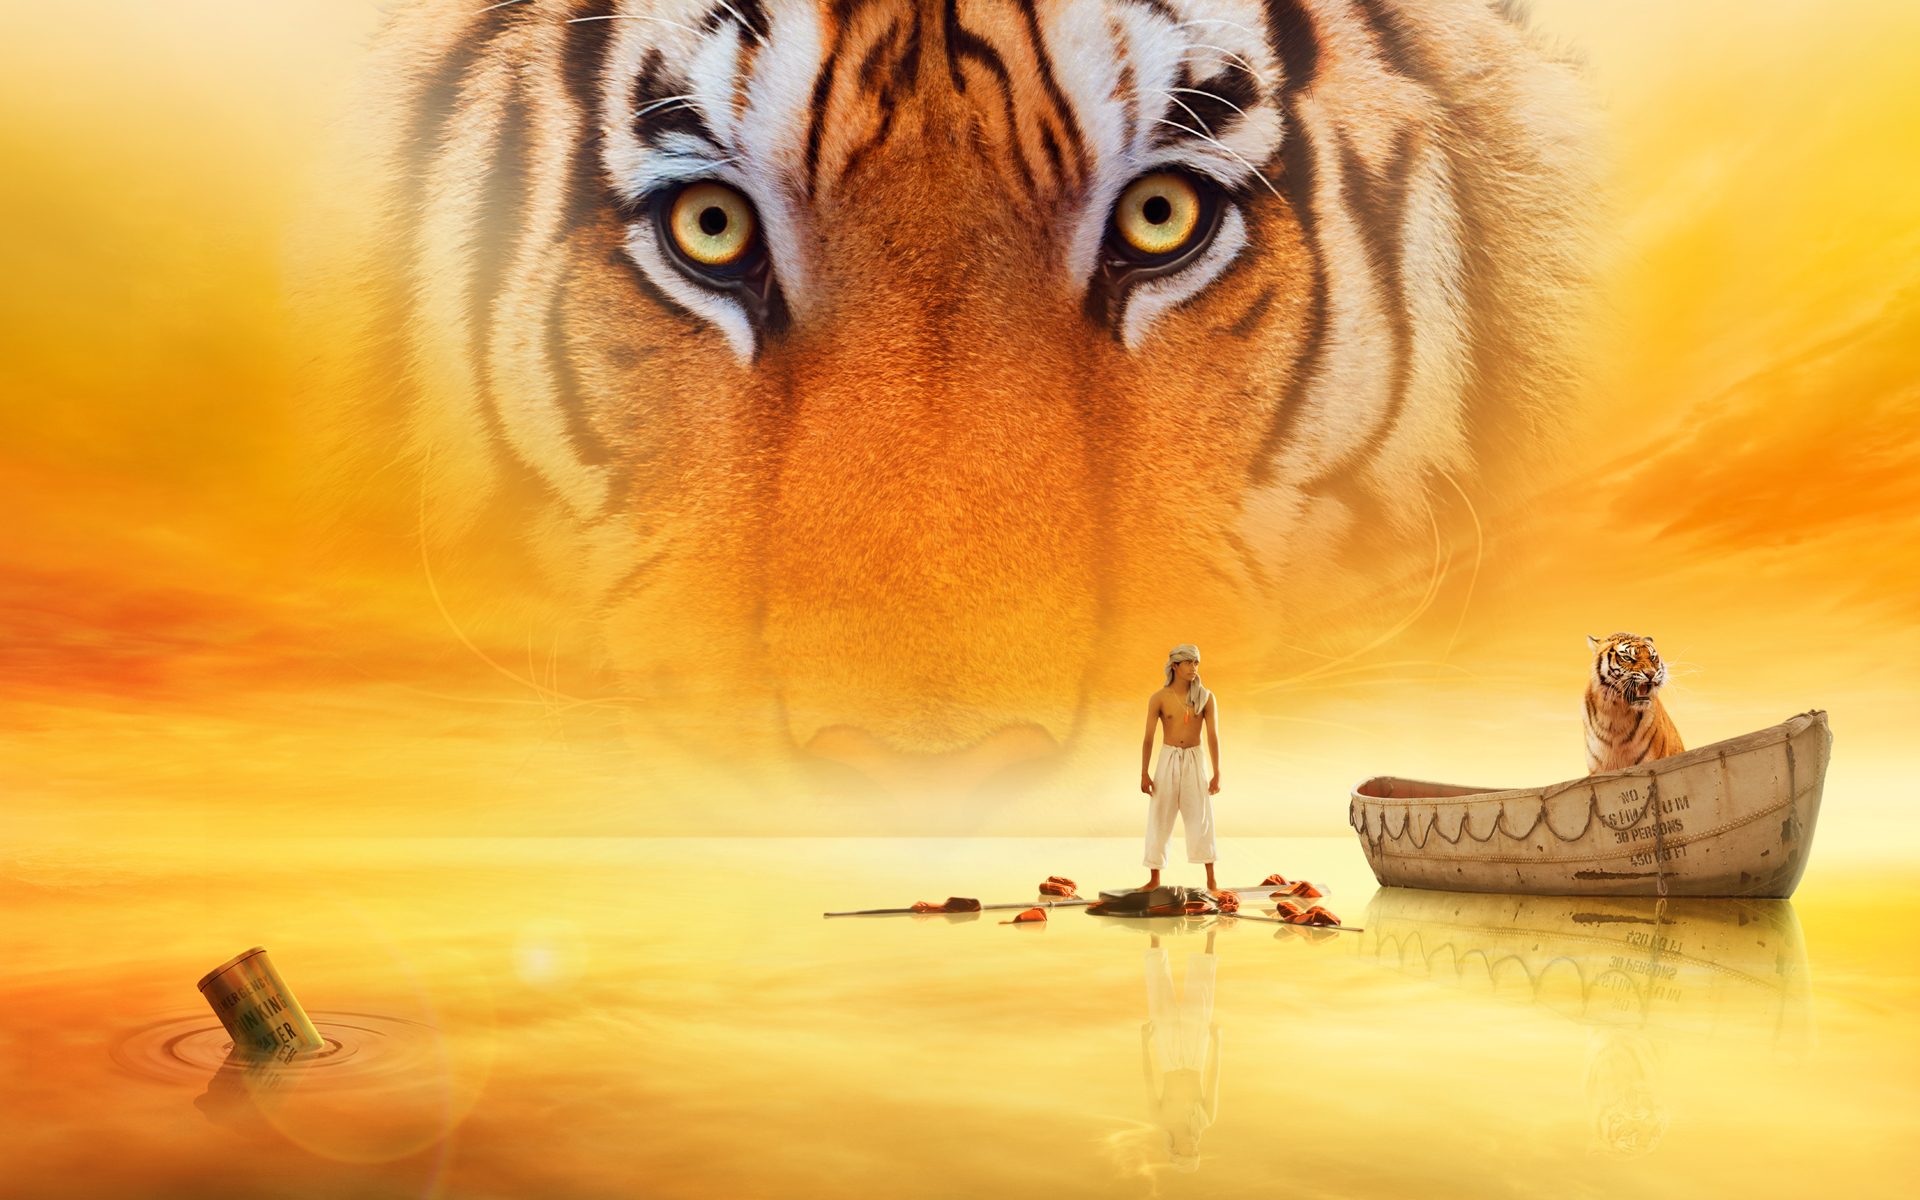 Wallpaper Life Of Pi